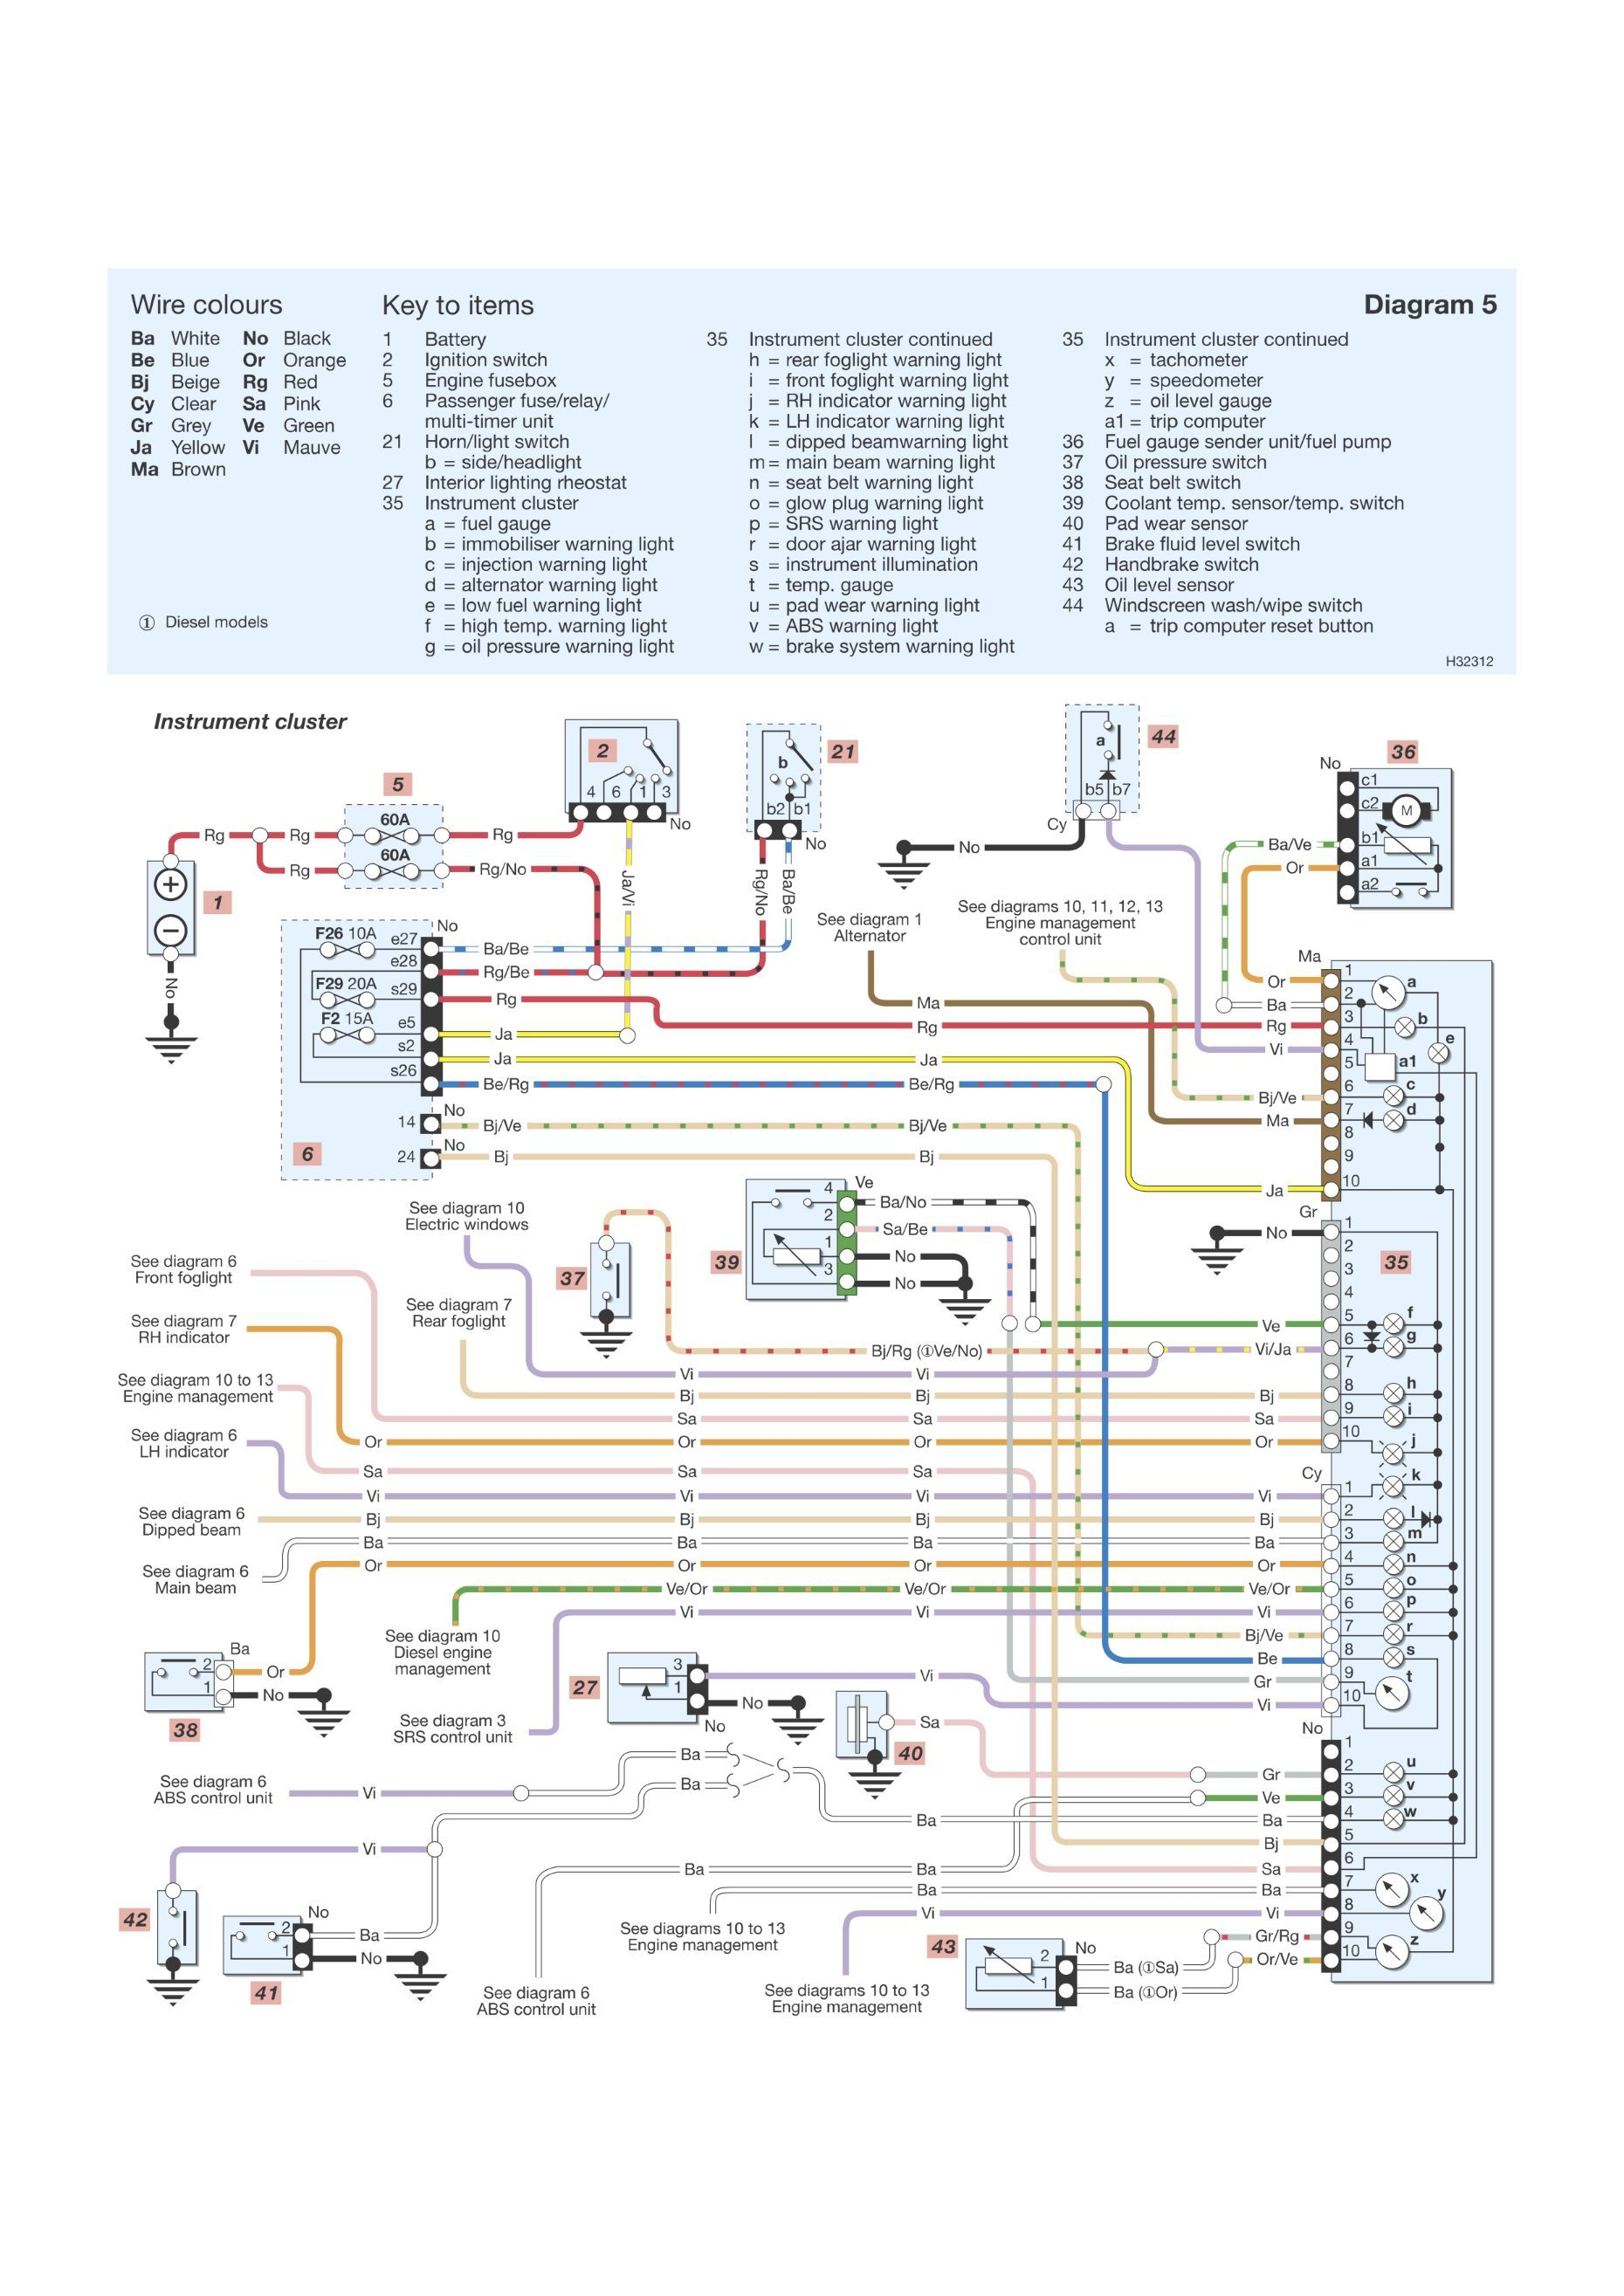 Renault Trafic Wiring Diagram Download Renault Trafic Renault Diagram